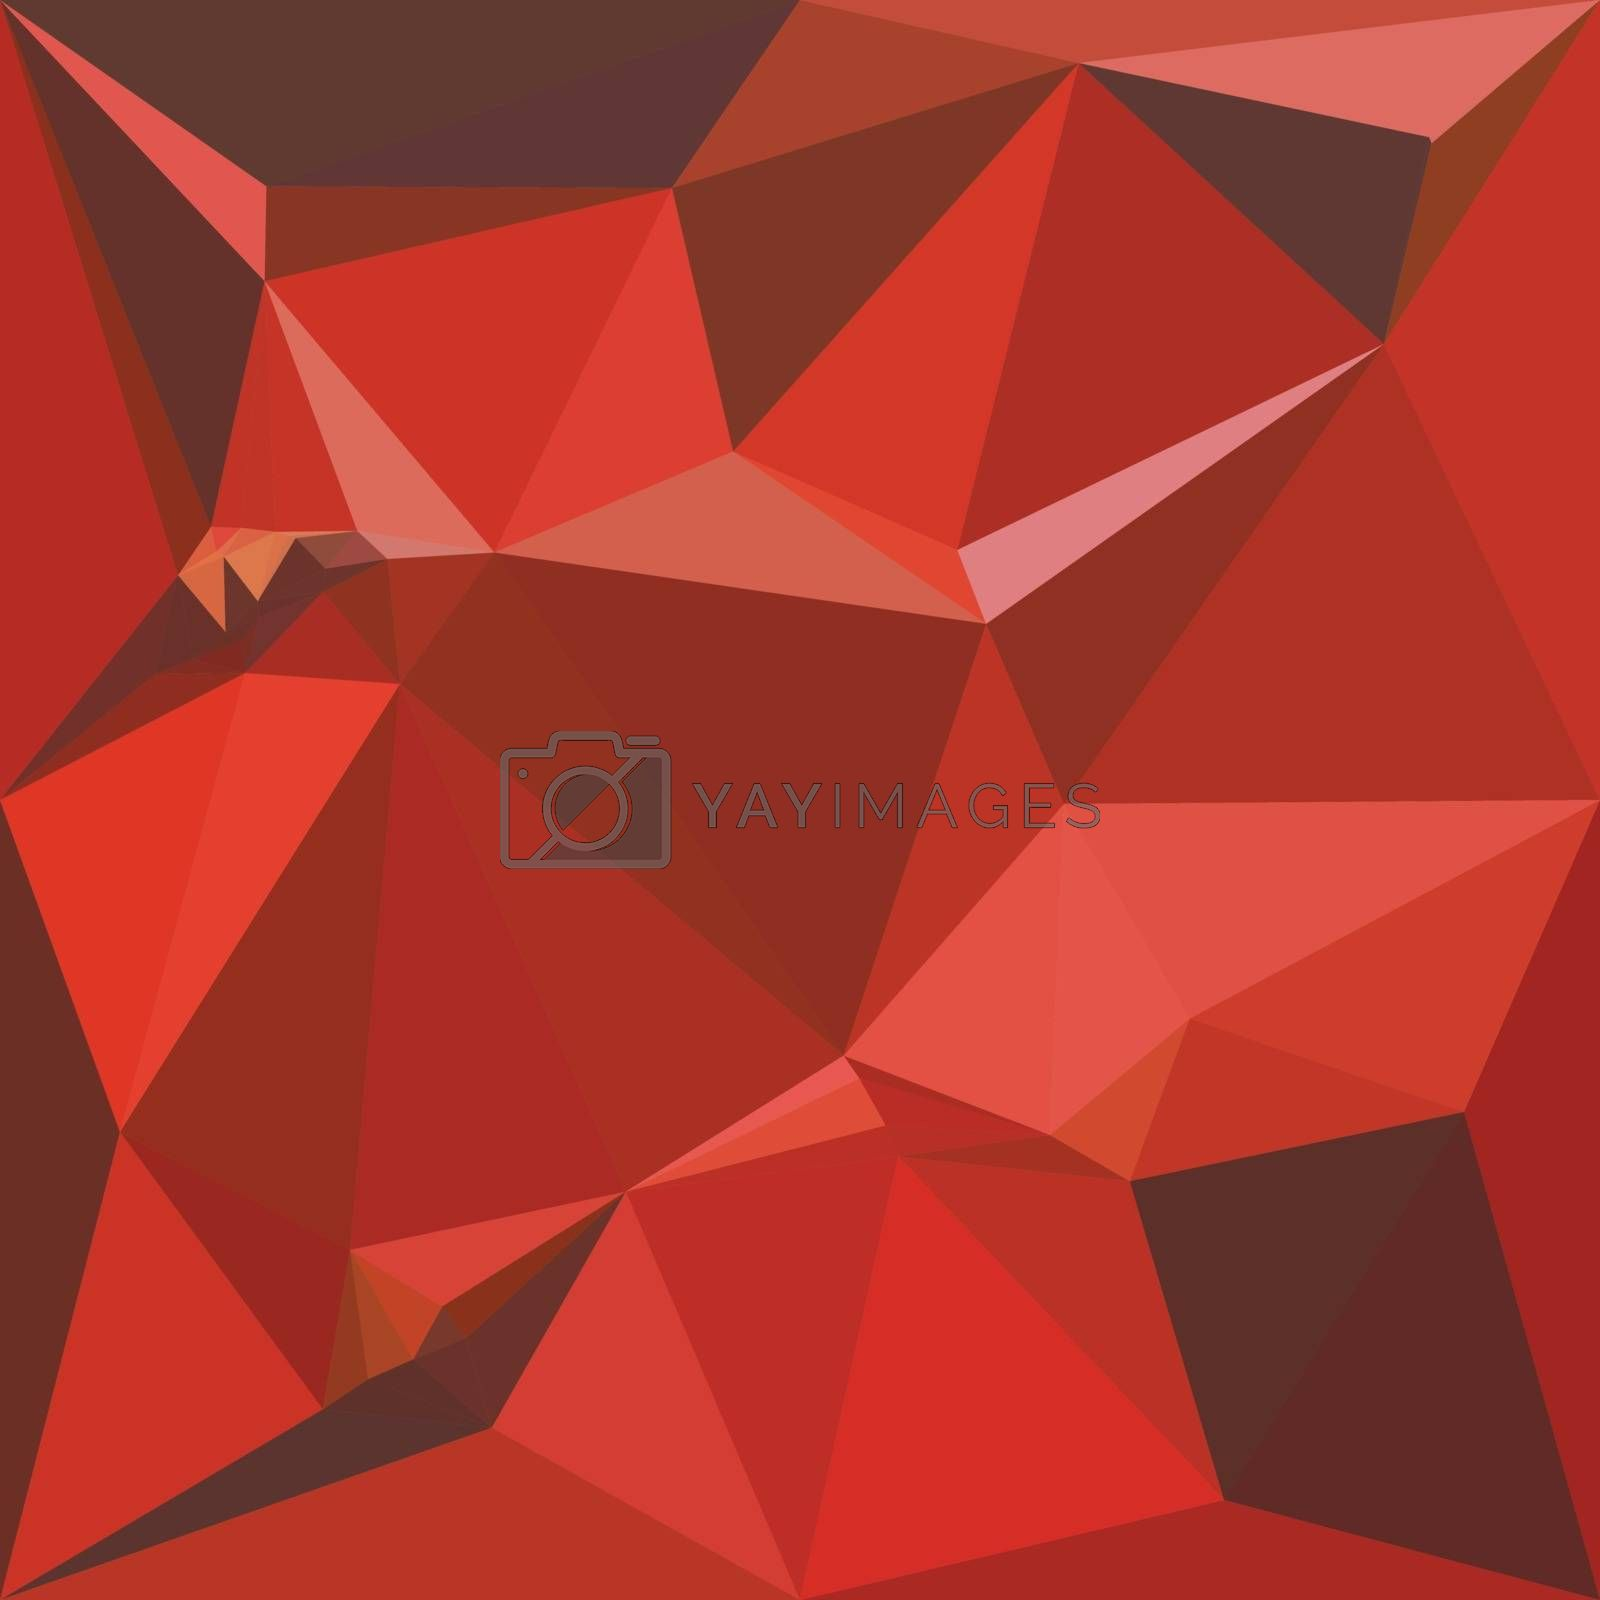 Low polygon style illustration of auburn red abstract geometric background.